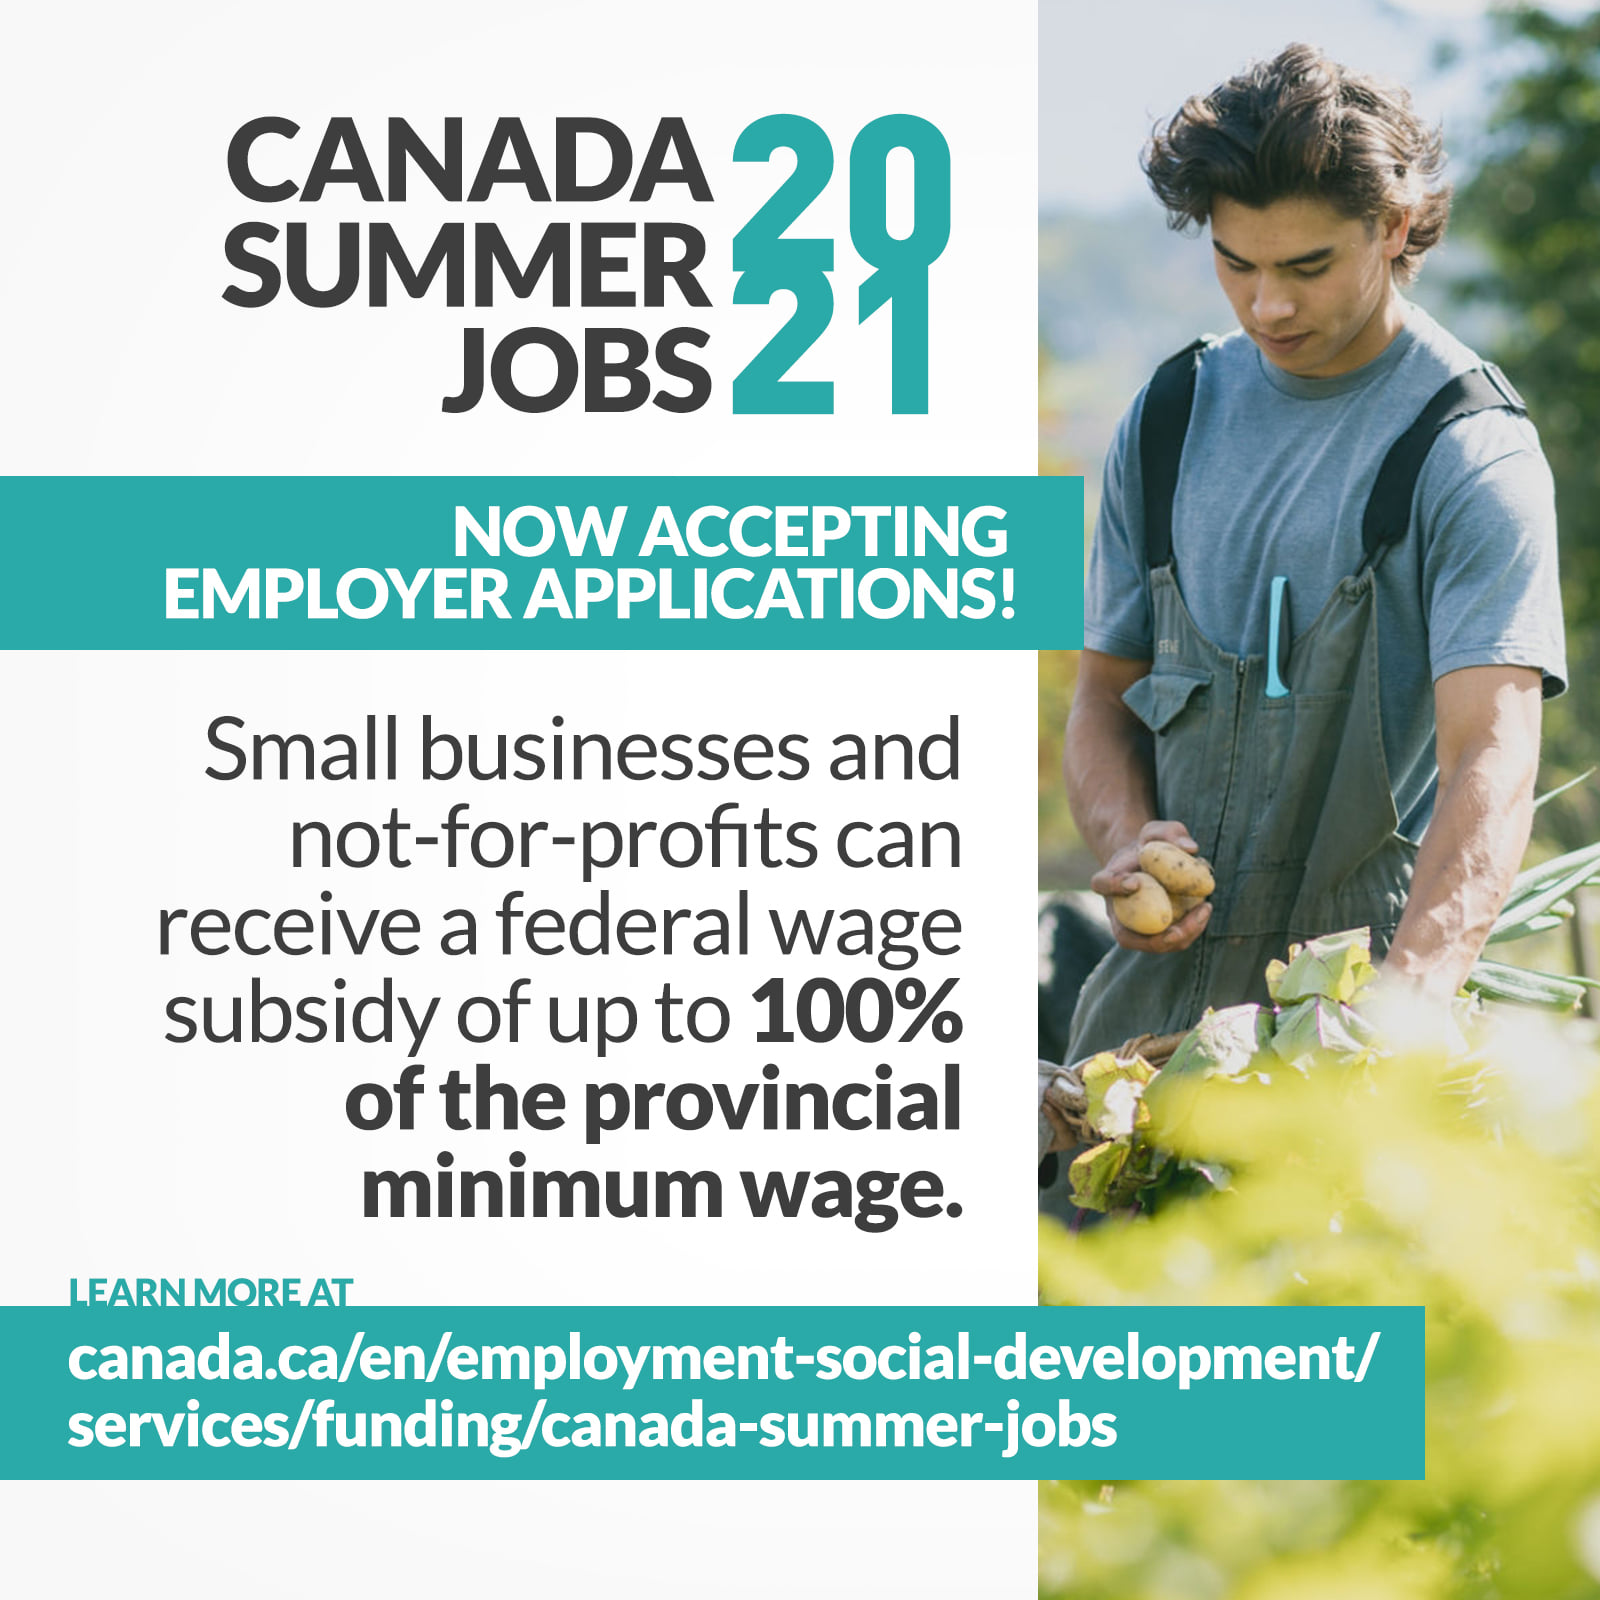 Canada Summer Jobs applications are now open